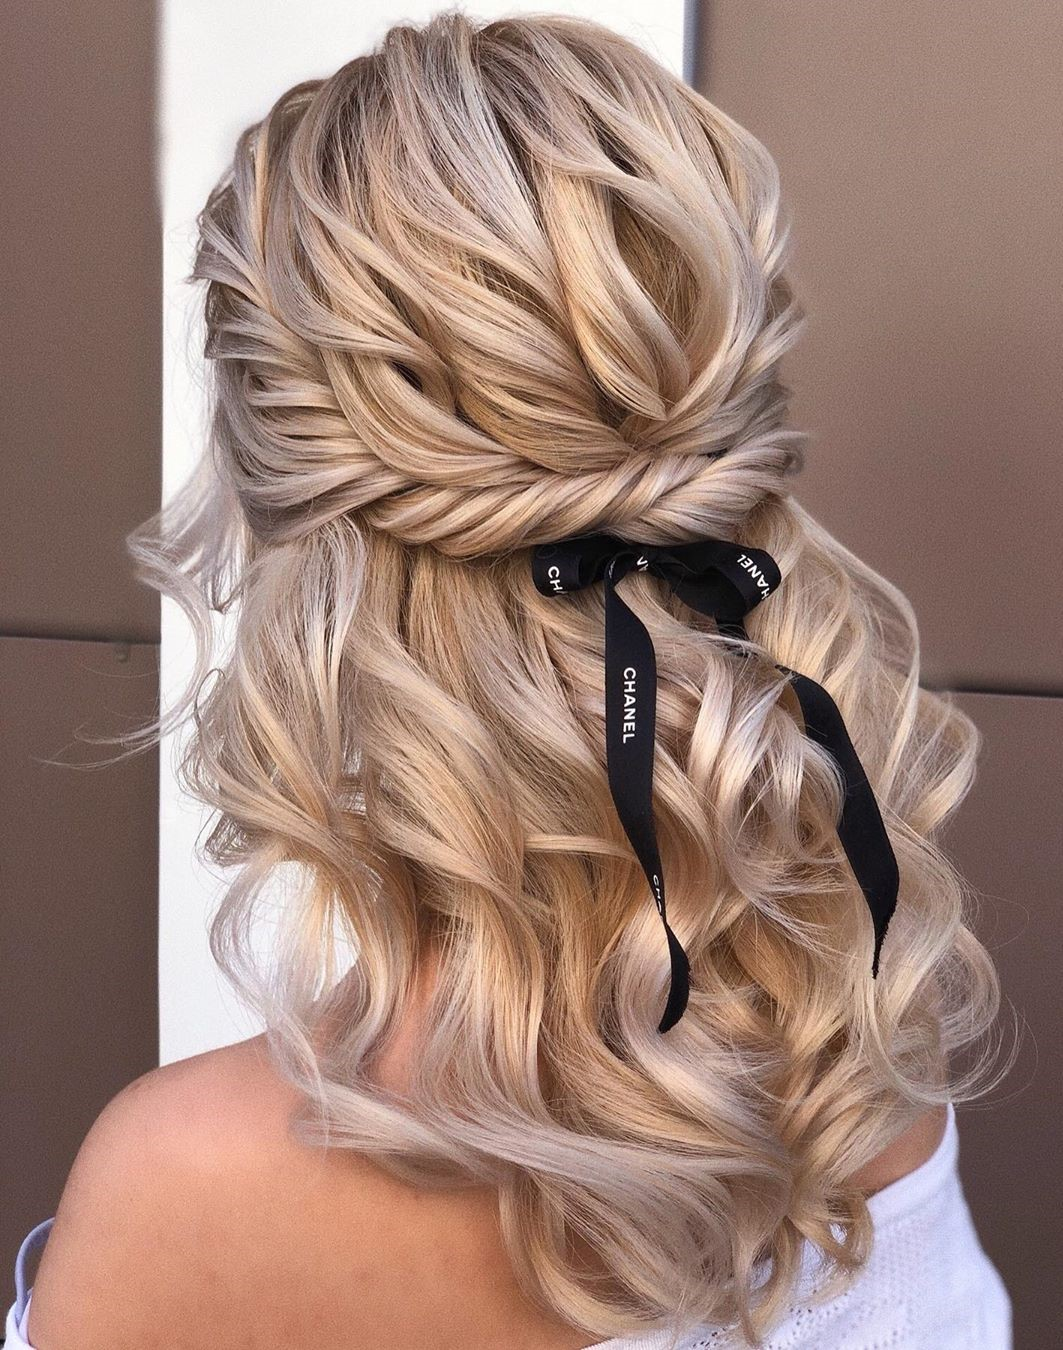 Half-Up Half-Down Curly Hair Style